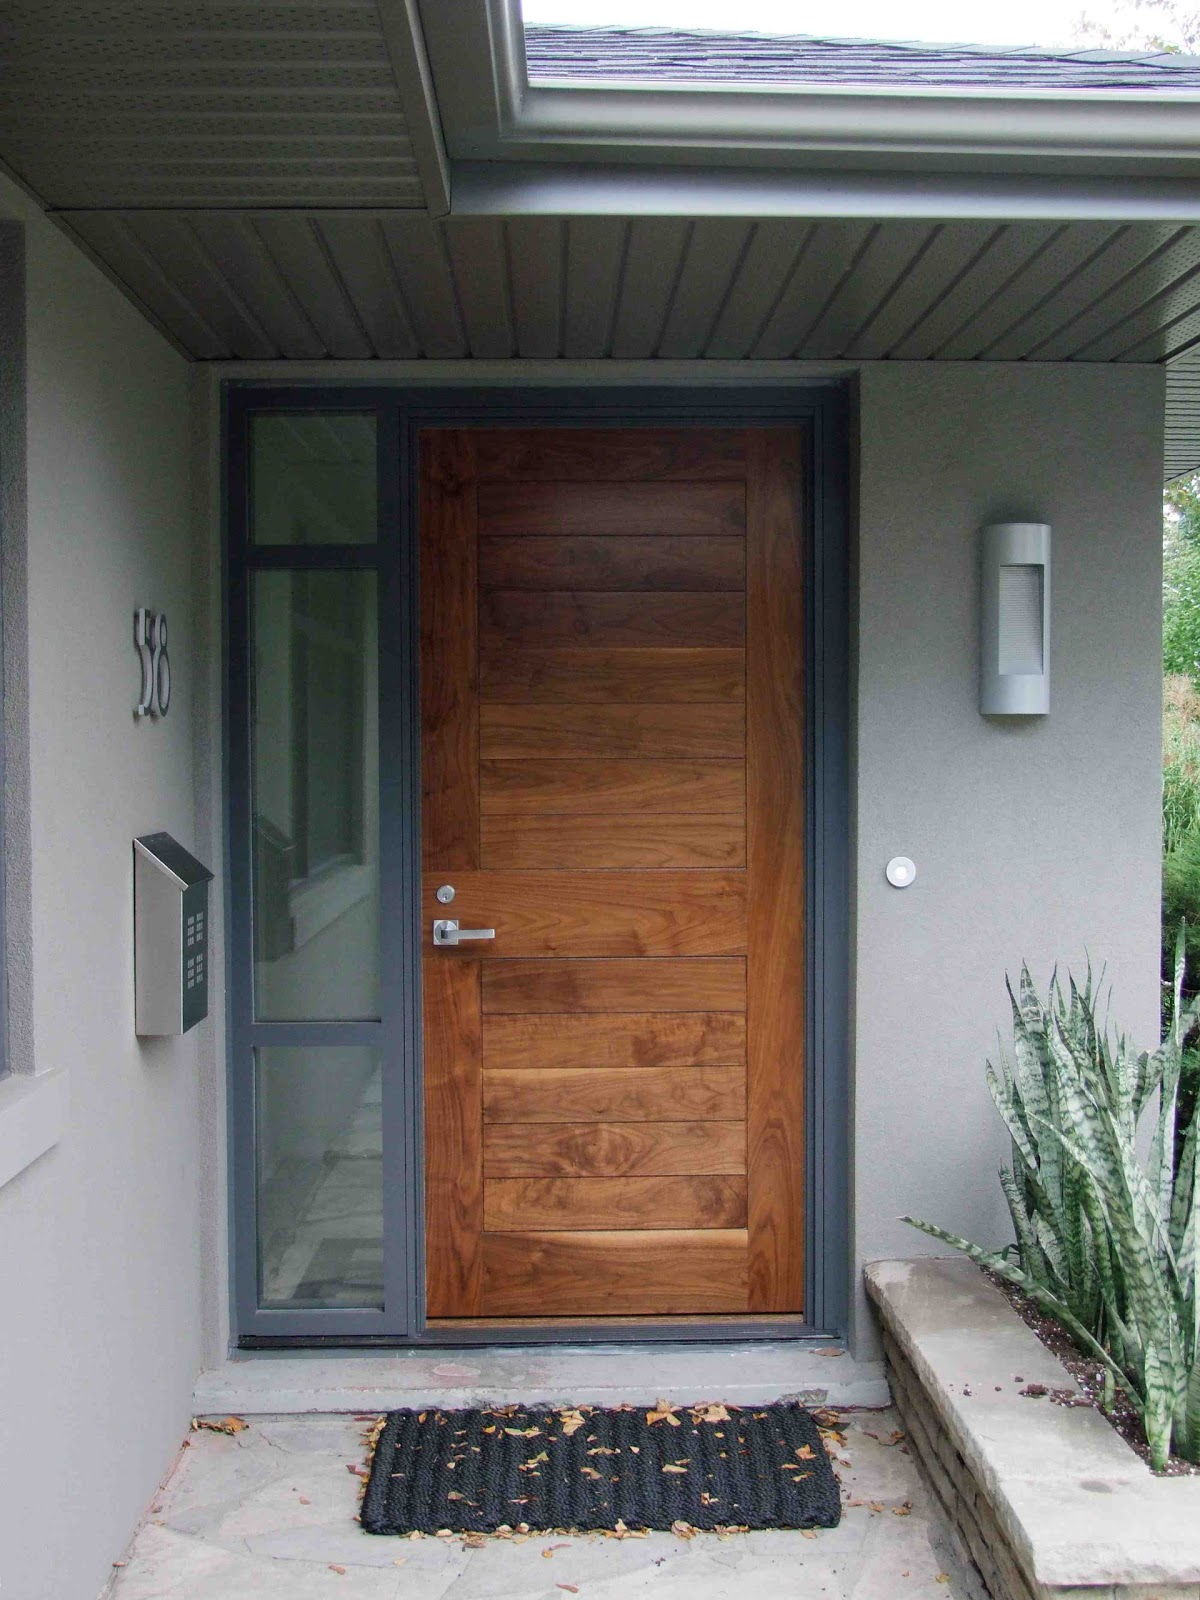 Creed 70 39 s bungalow makes a modern impression Outside door design